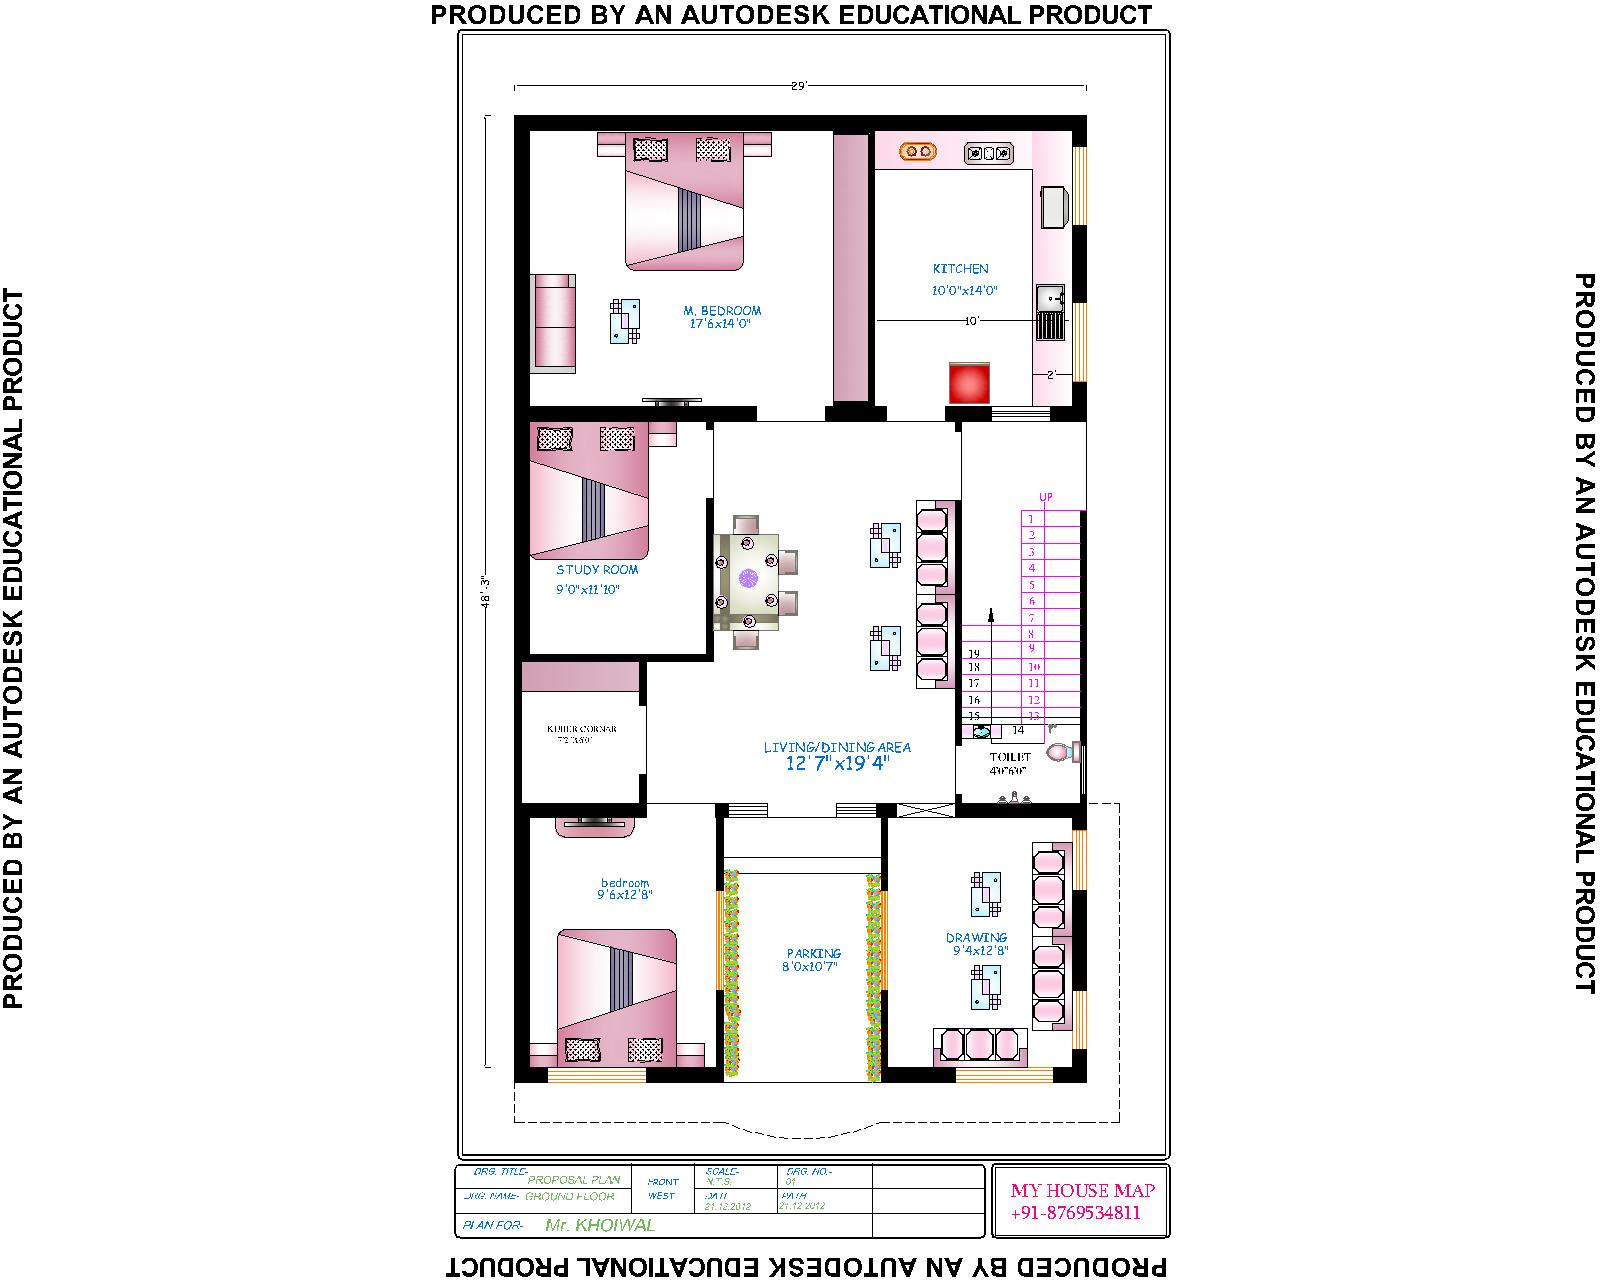 My house map house map india for Maps of home design